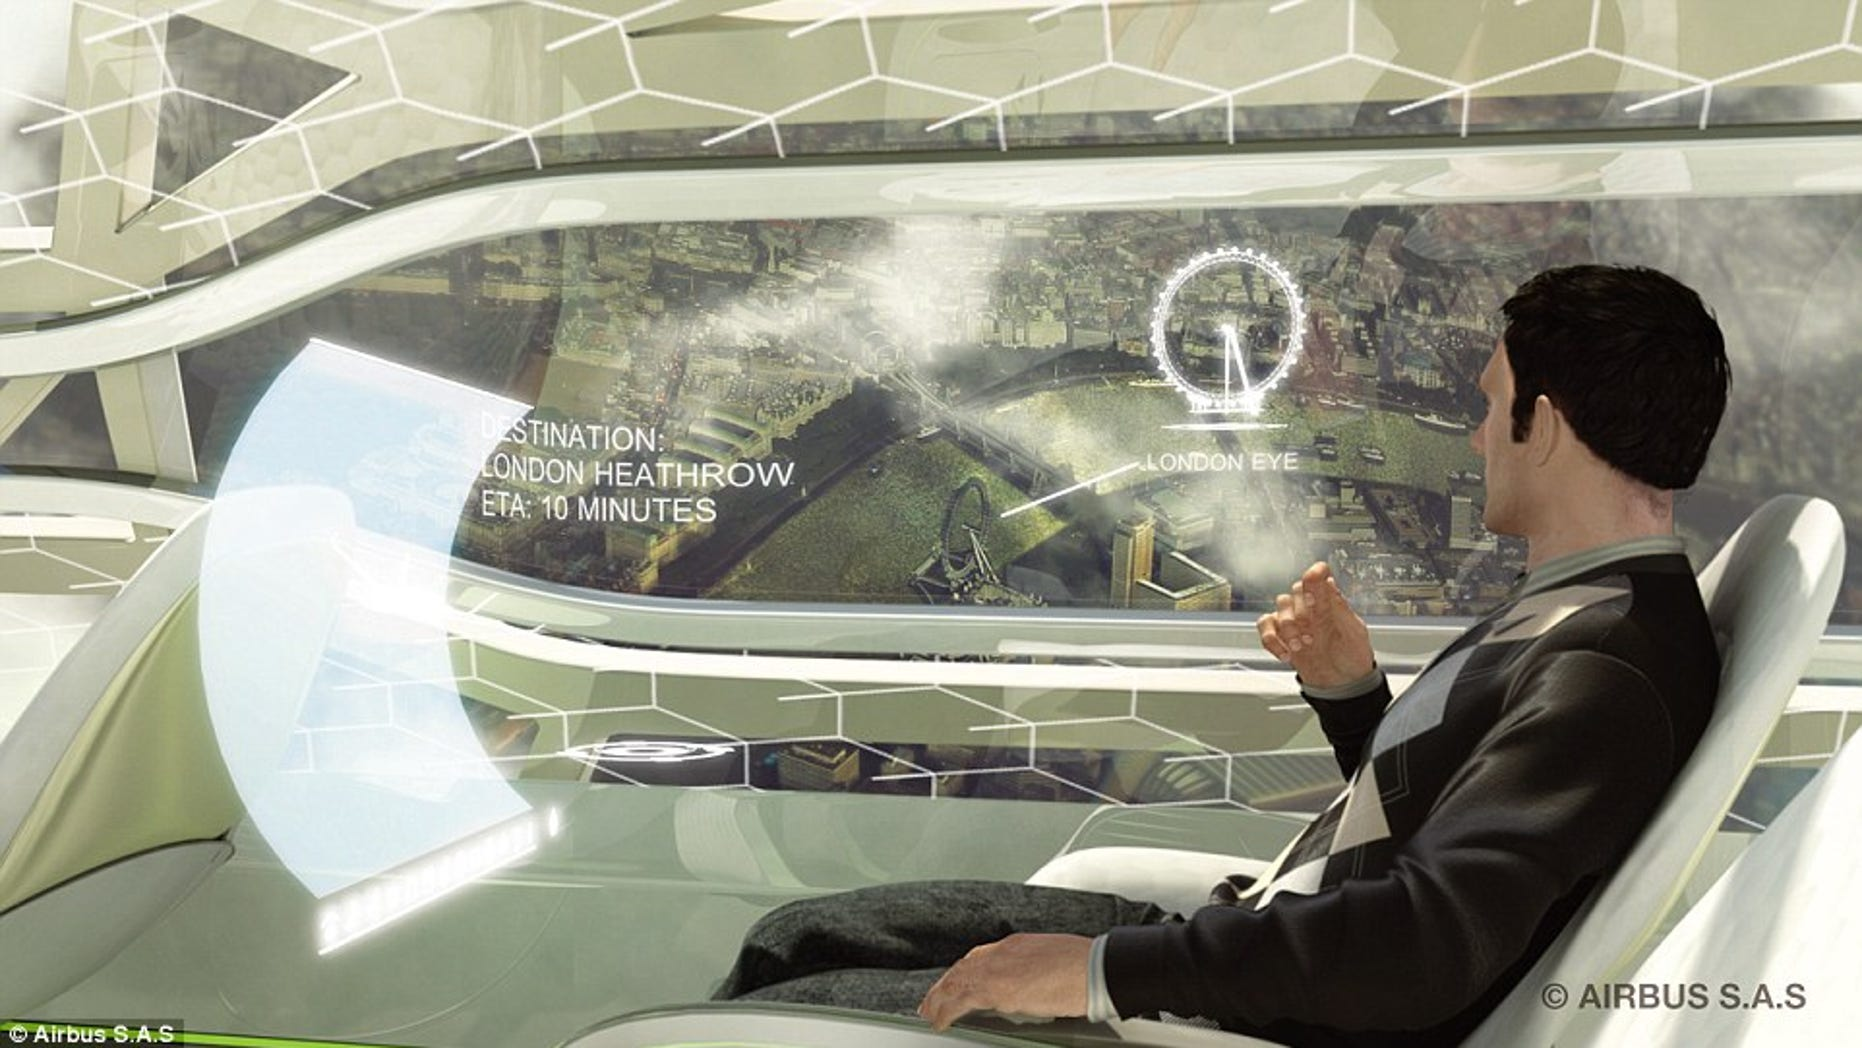 The airplanes of the future may have touchscreen interactive windows.